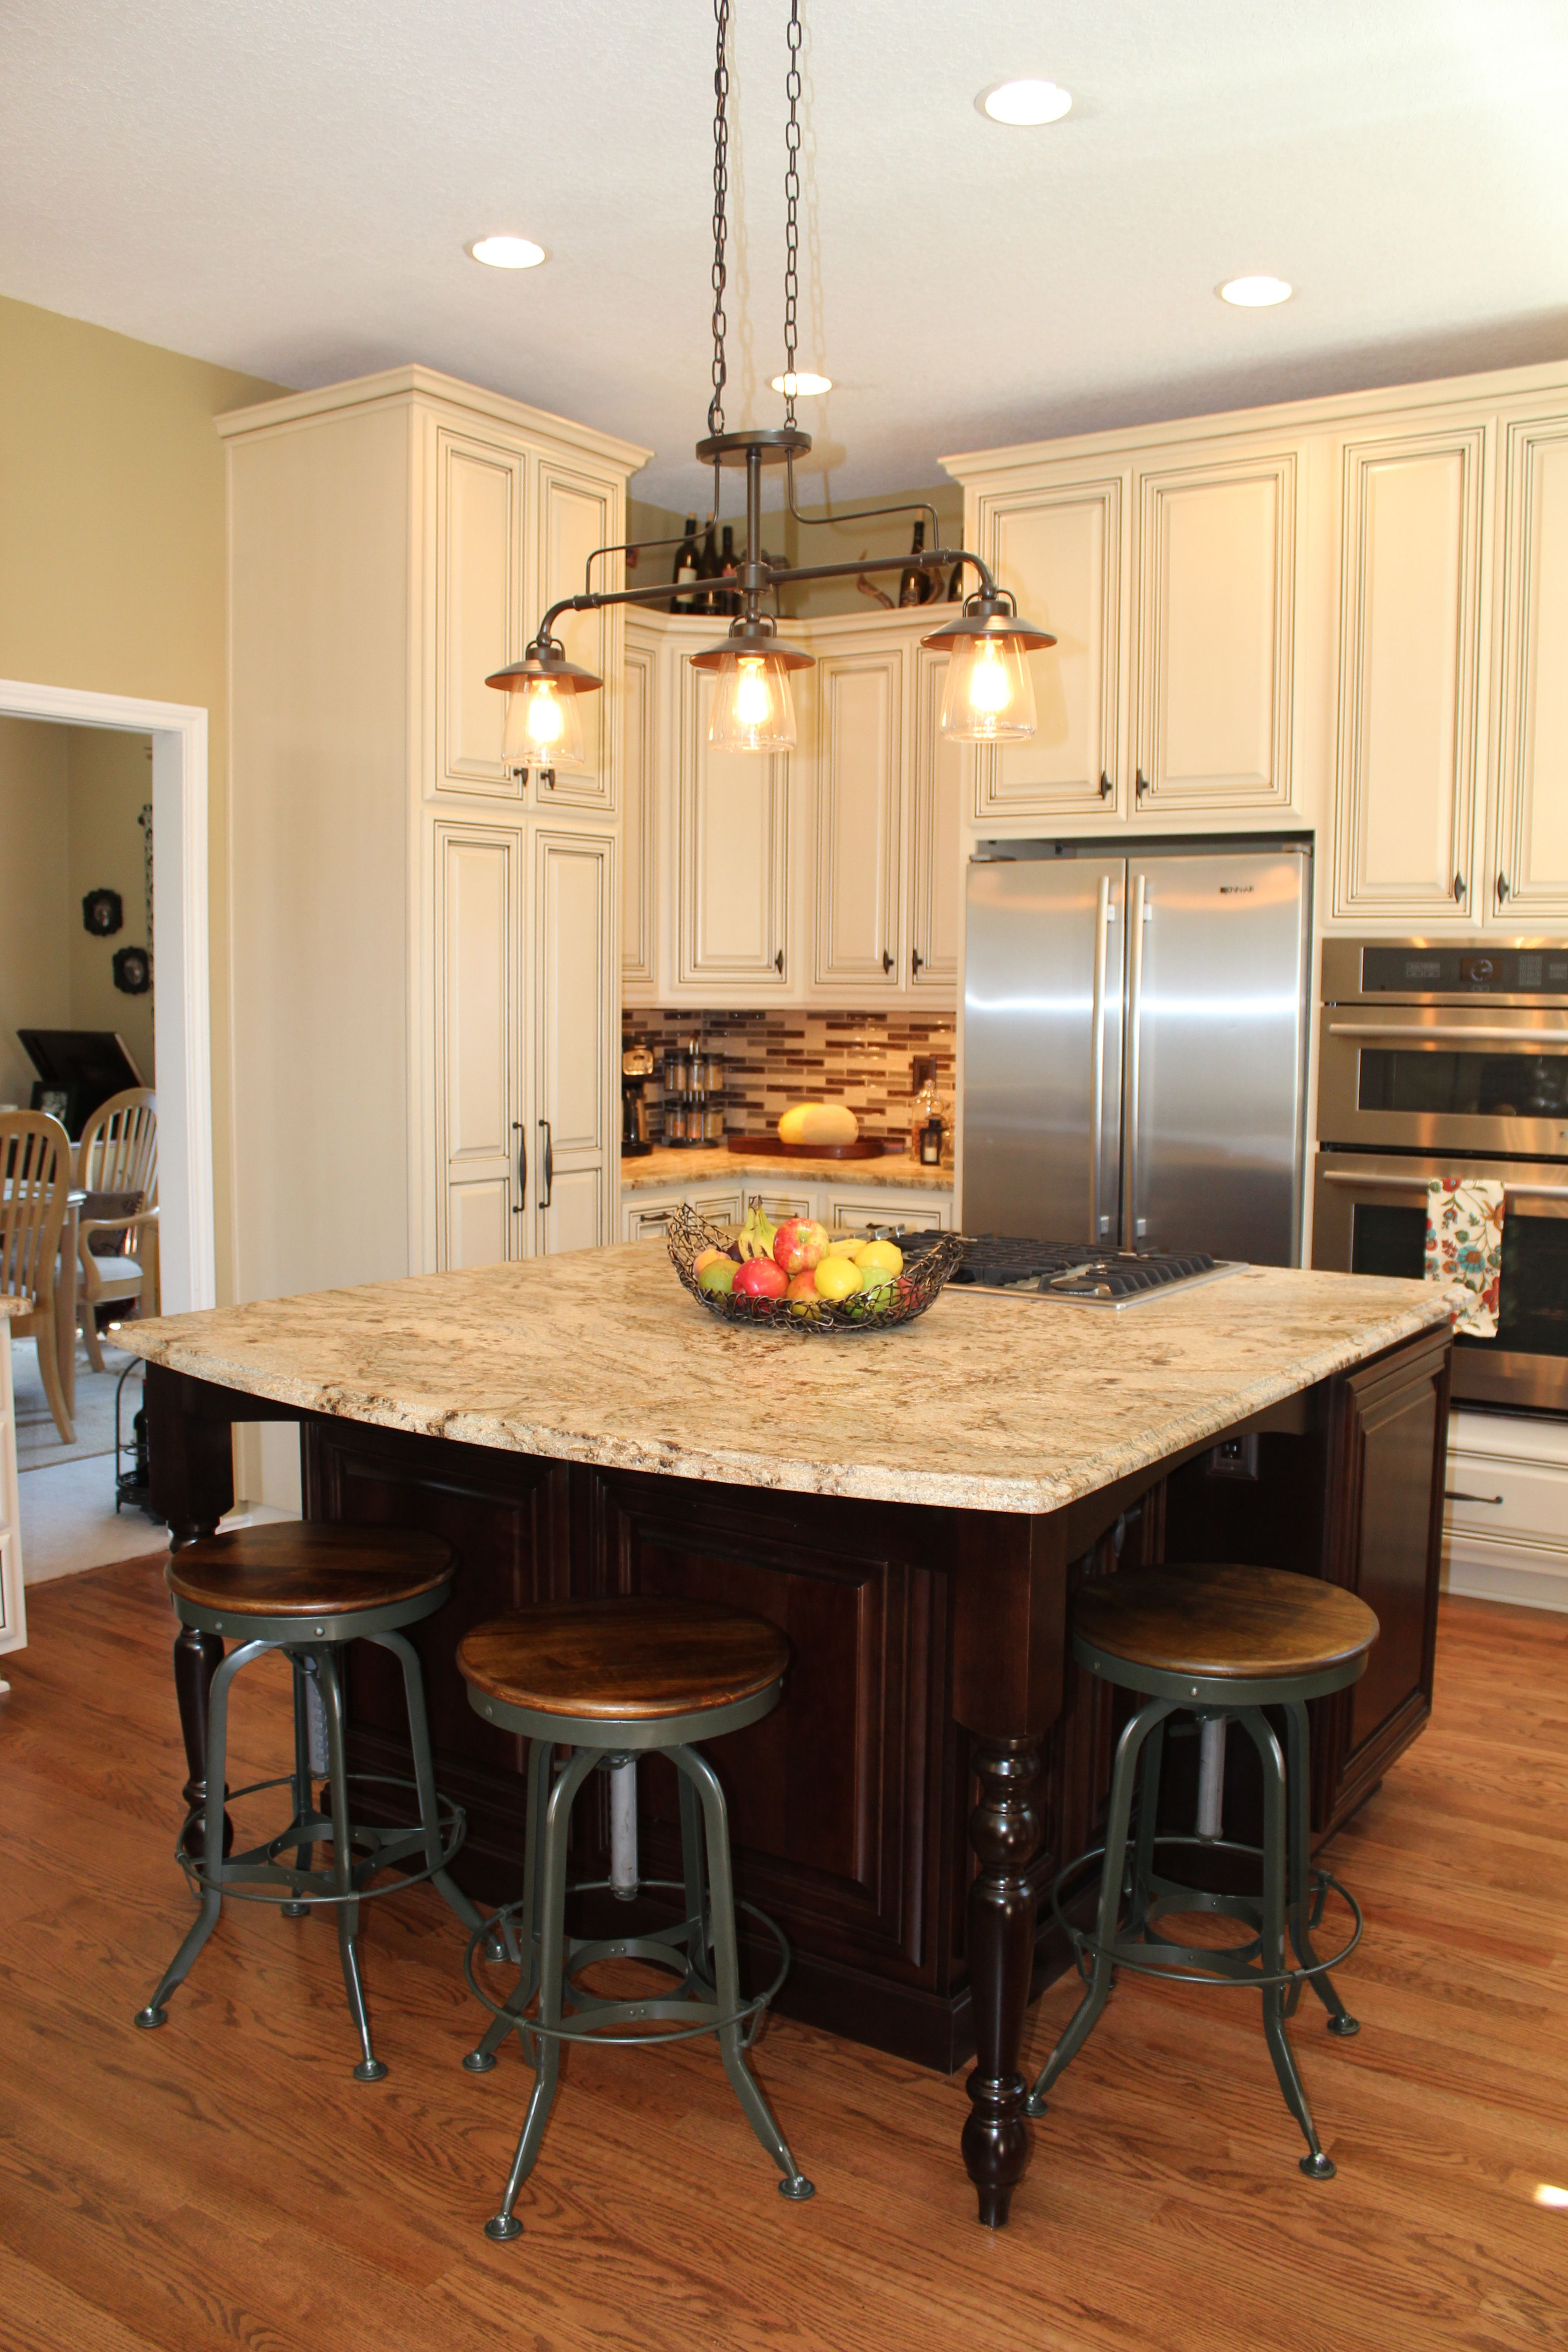 newly remodeled kitchen island and barstools hg design iteriors - Newly Remodeled Kitchens